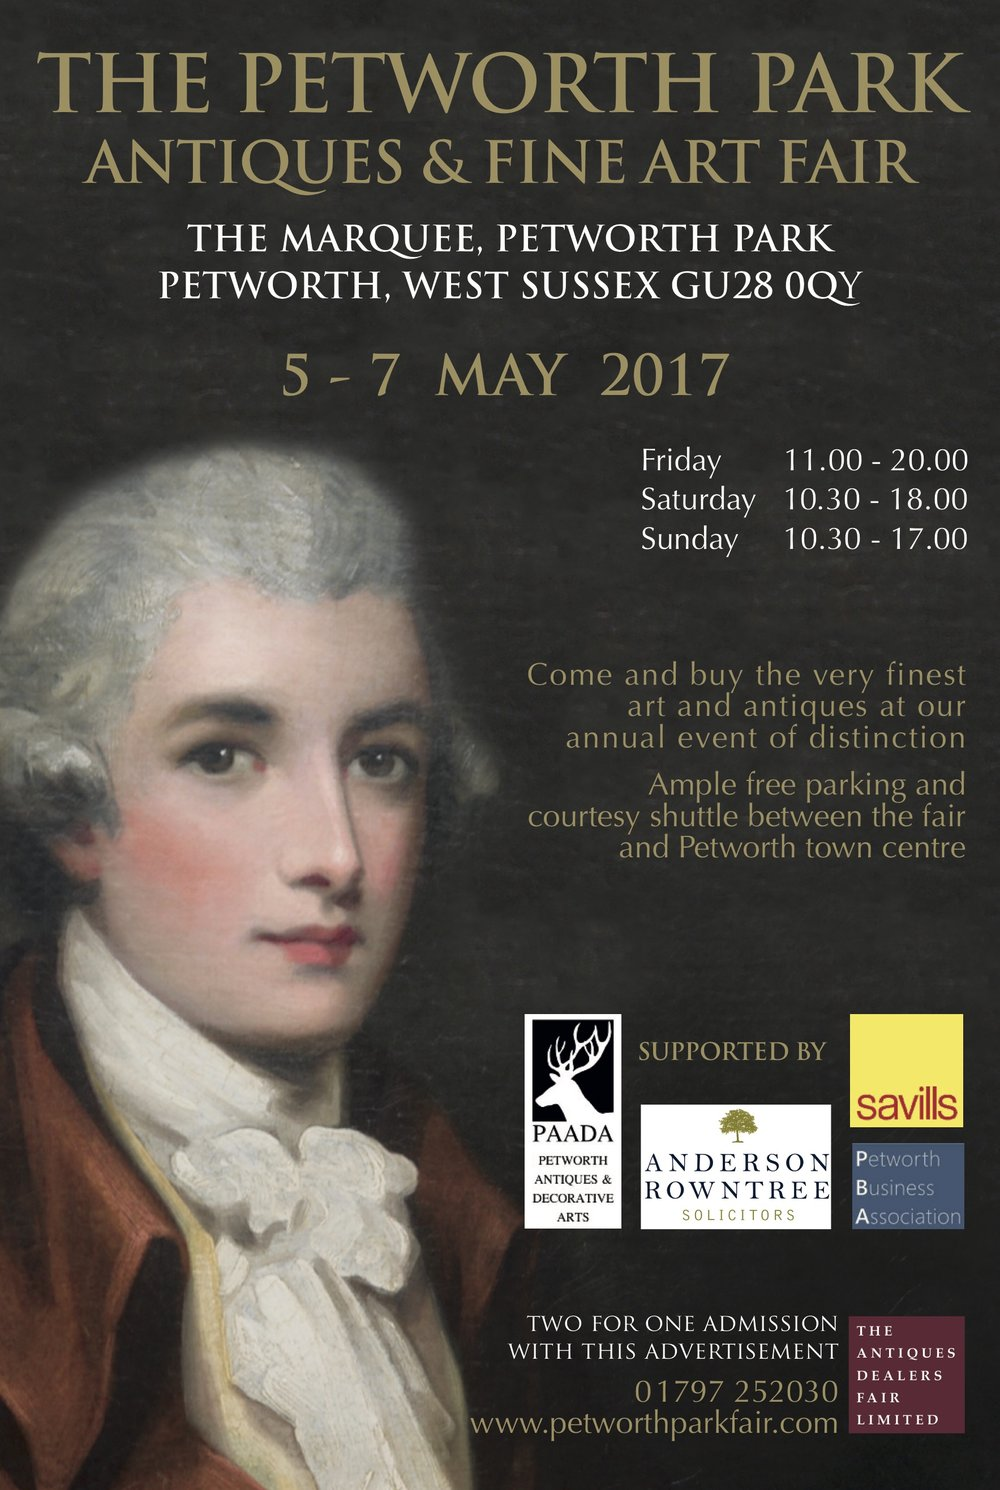 The Petworth Park Antiques & Fine Arts Fair